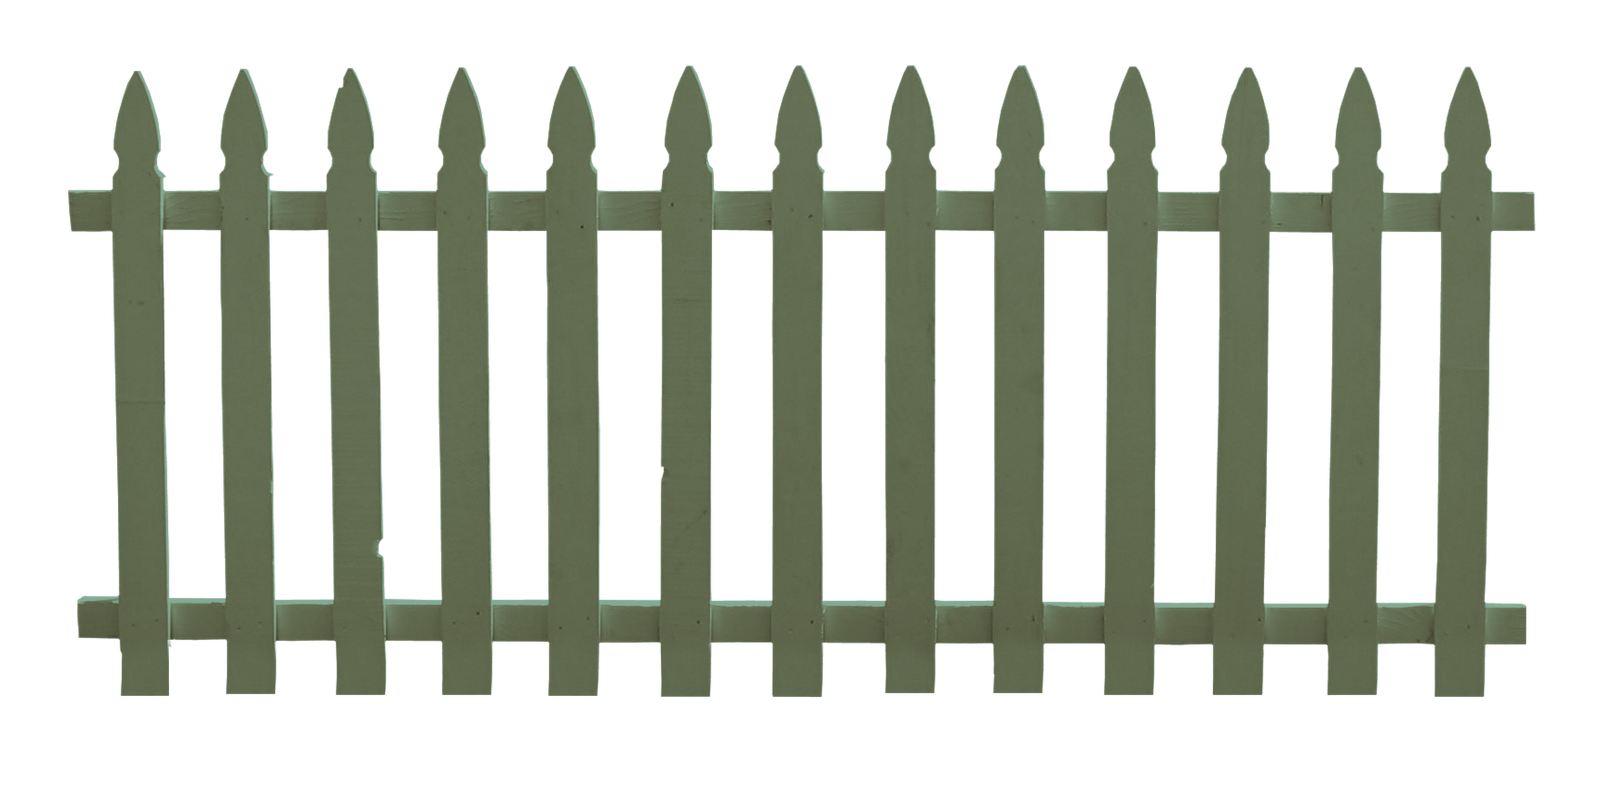 School fence clipart image stock 28+ Collection of Halloween Picket Fence Clipart | High quality ... image stock